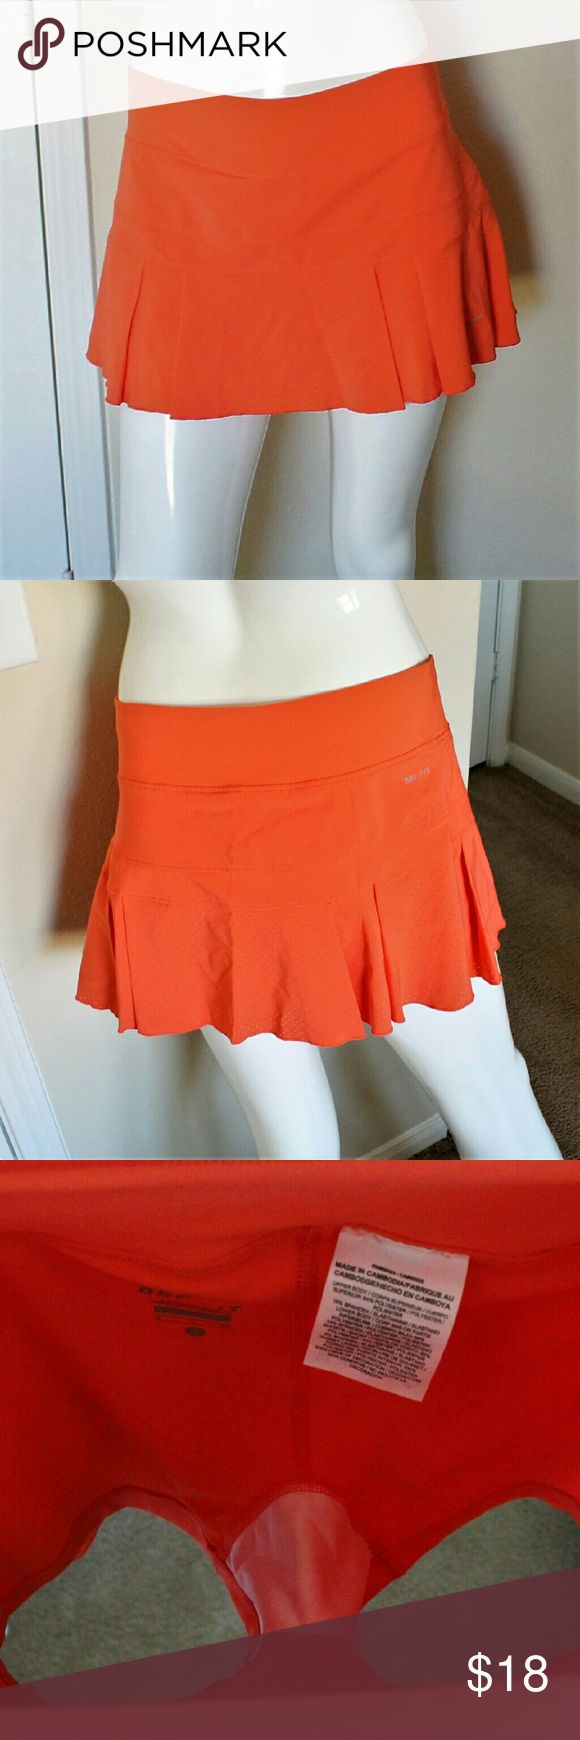 Nike Drifit Coral Tennis Skort Awesome workout skirt in gently used condition. It is fully lined with a pair of hidden shorts underneath. The photos make it seem a little brighter than it actually is. It's more coral and less bright orange. Can be used for tennis, badminton, golf, etc.   Please message me if you have questions or need more pictures. Nike Skirts Mini